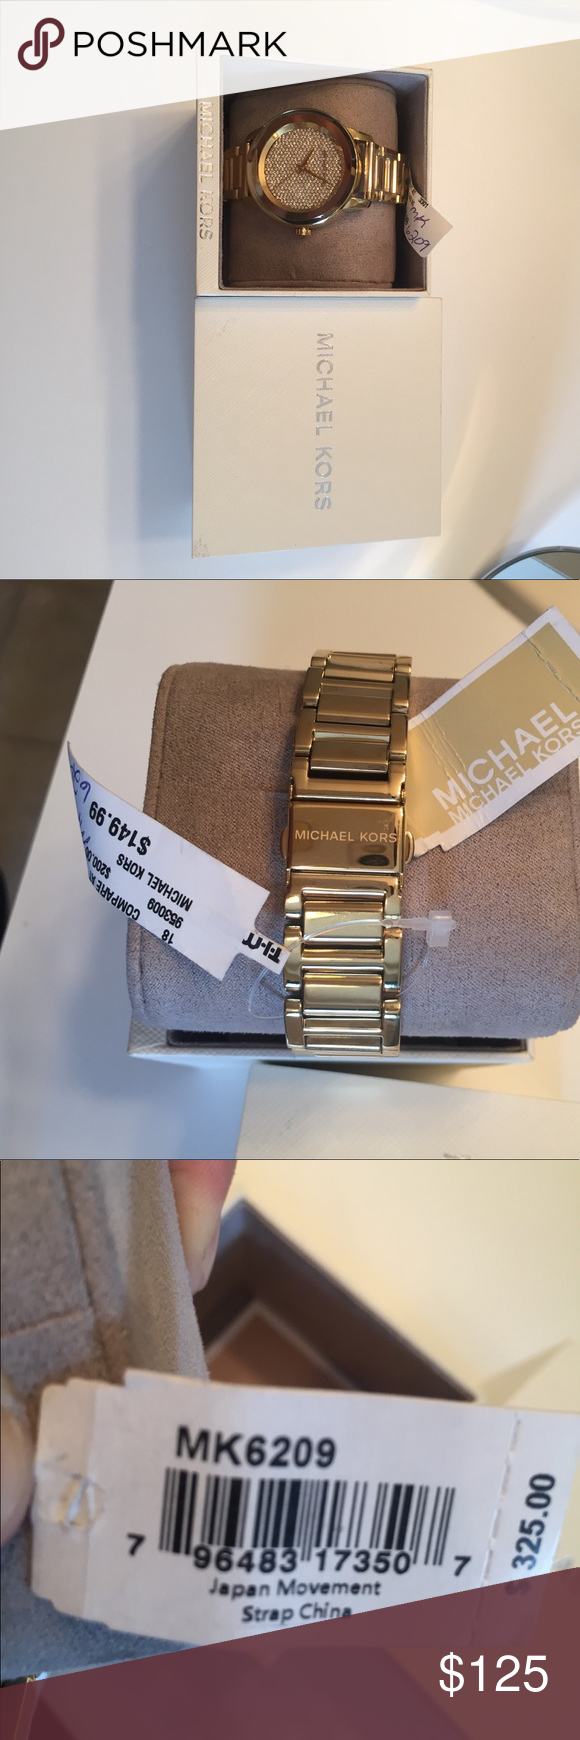 d14fc590e030 NEW Michael Kors MK6209 Kinley Pave Women s Watch NEW Michael Kors MK6209  Kinley Pave Crystal Dial Gold Women s Ladies 42mm Watch Michael Kors  Accessories ...